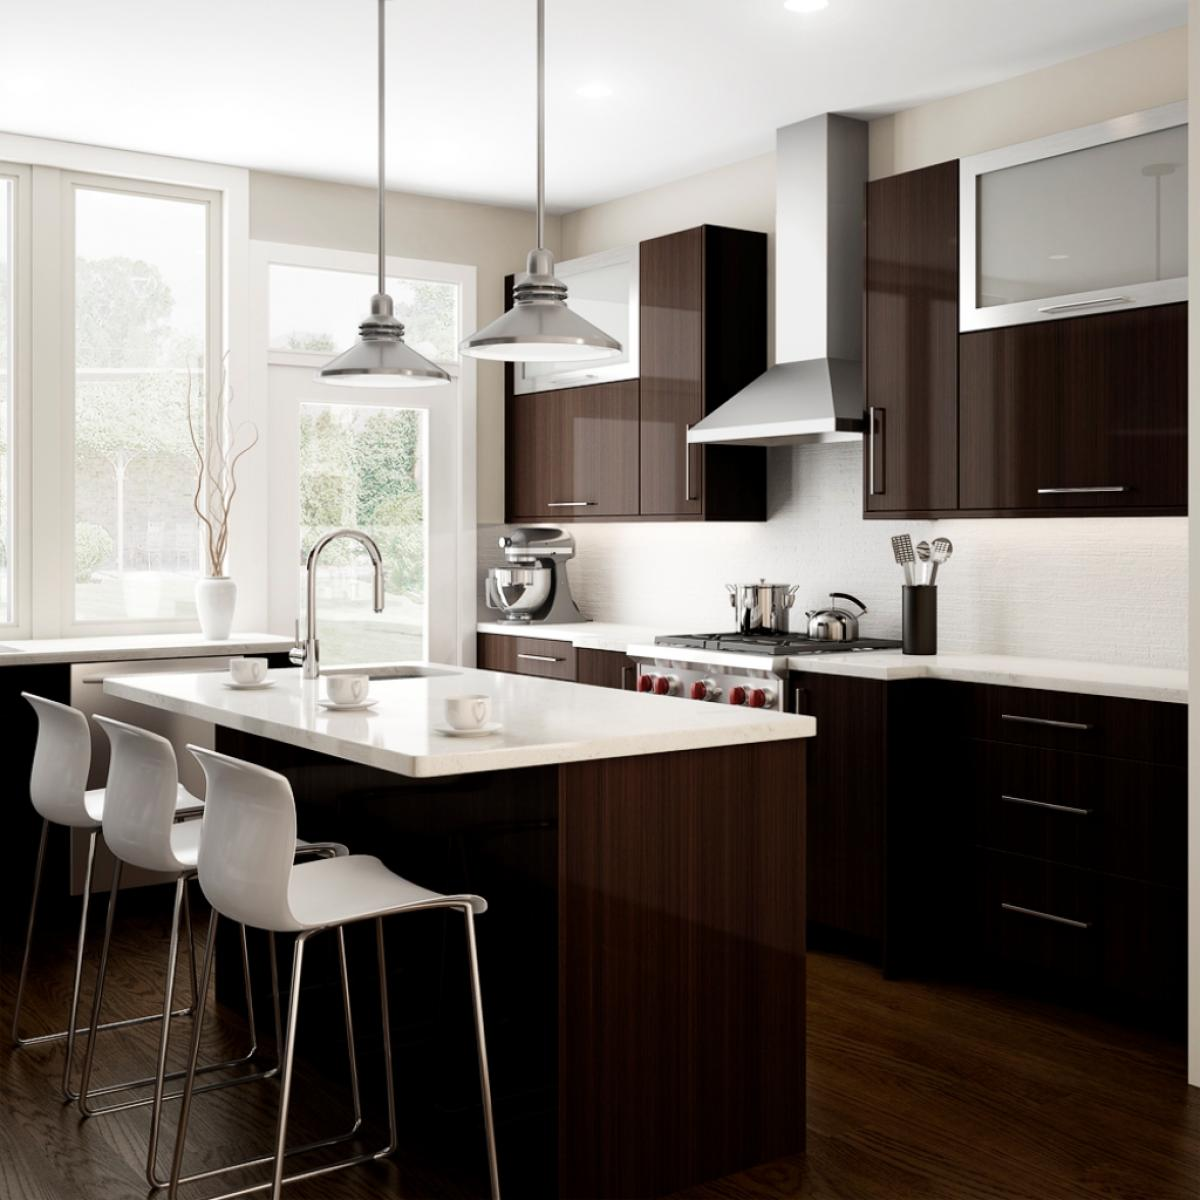 Kitchen Design Brown: Modern-luxurious-small-kitchen-design-with-small-kitchen